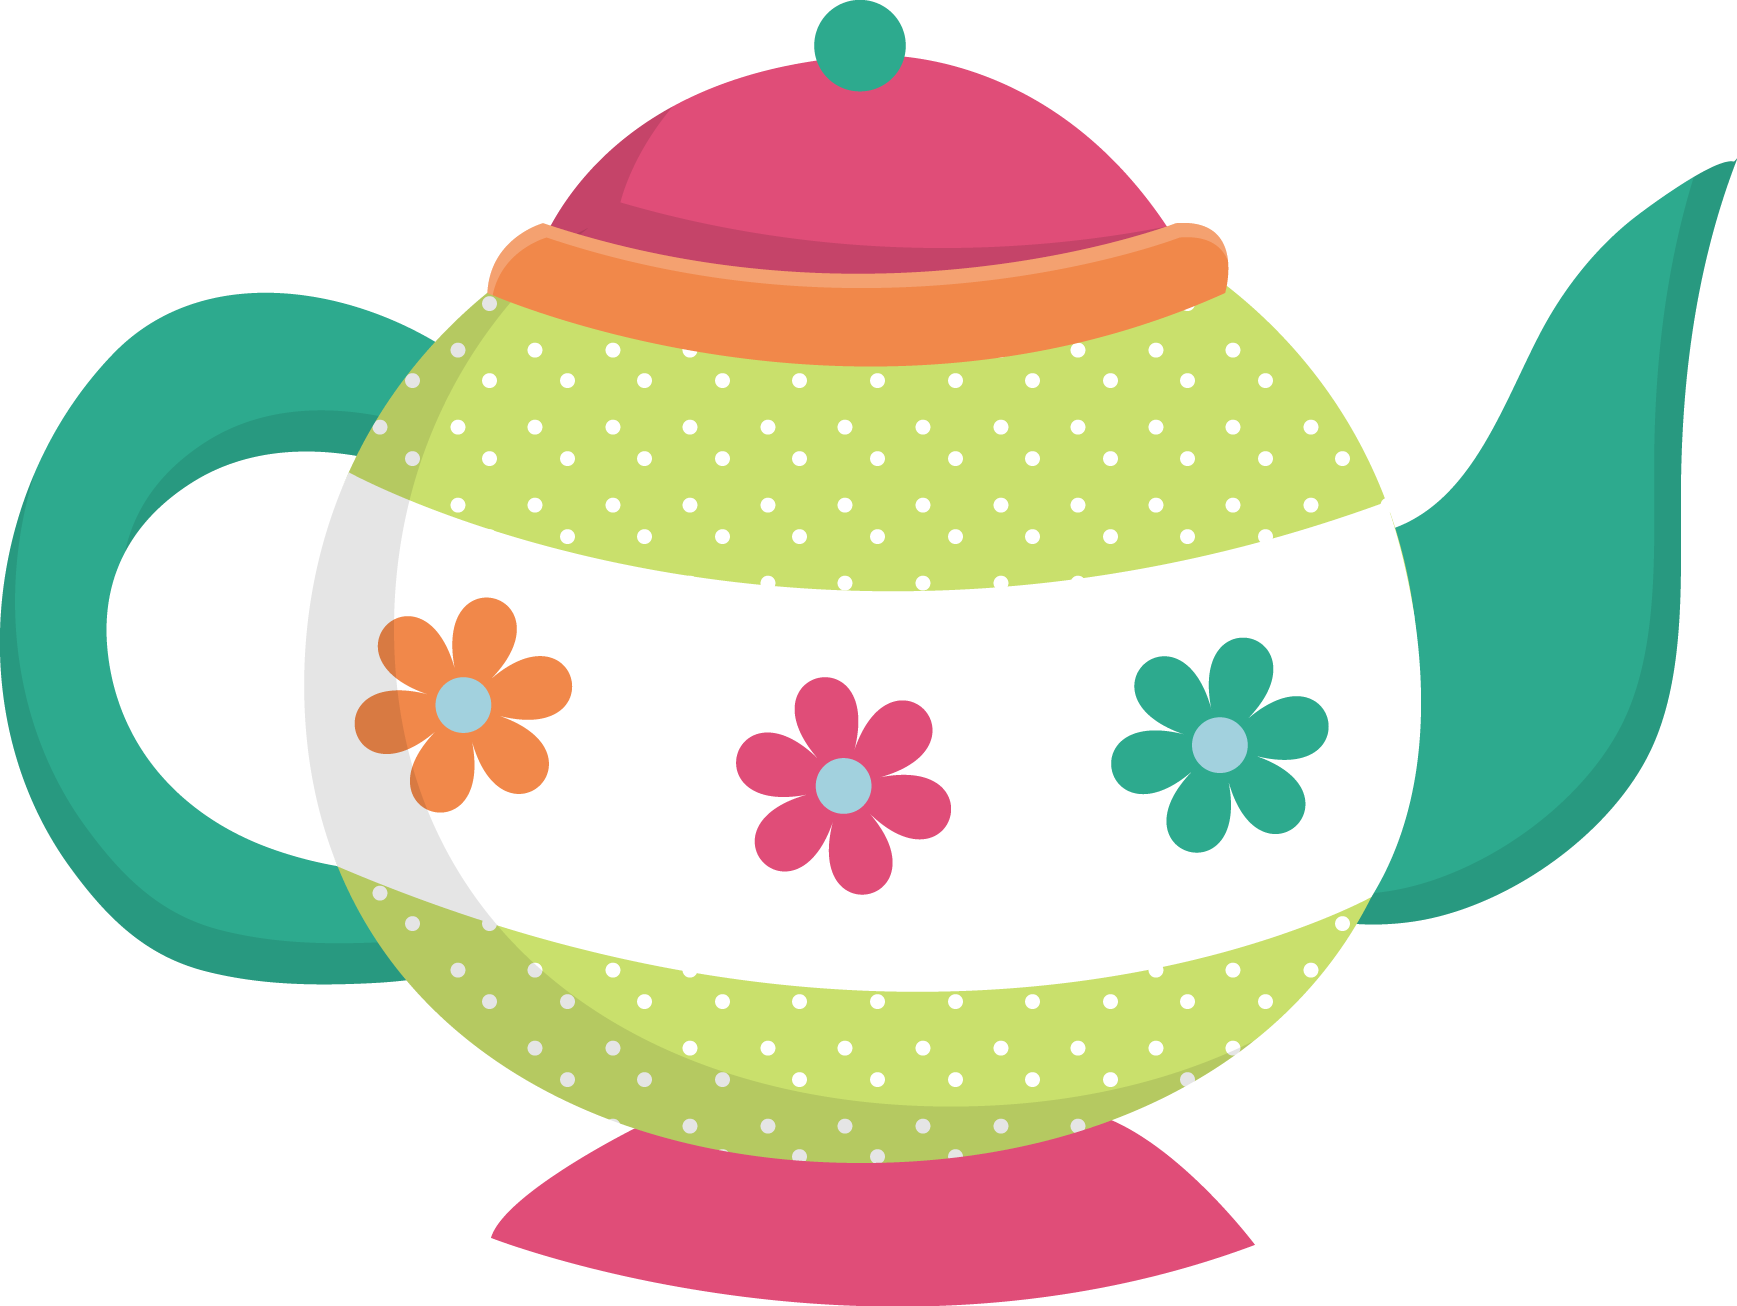 1737x1306 Tea Pot Clip Art Cliparts Co Tea Pot Clip Art 1737 1306 Wi Flyers